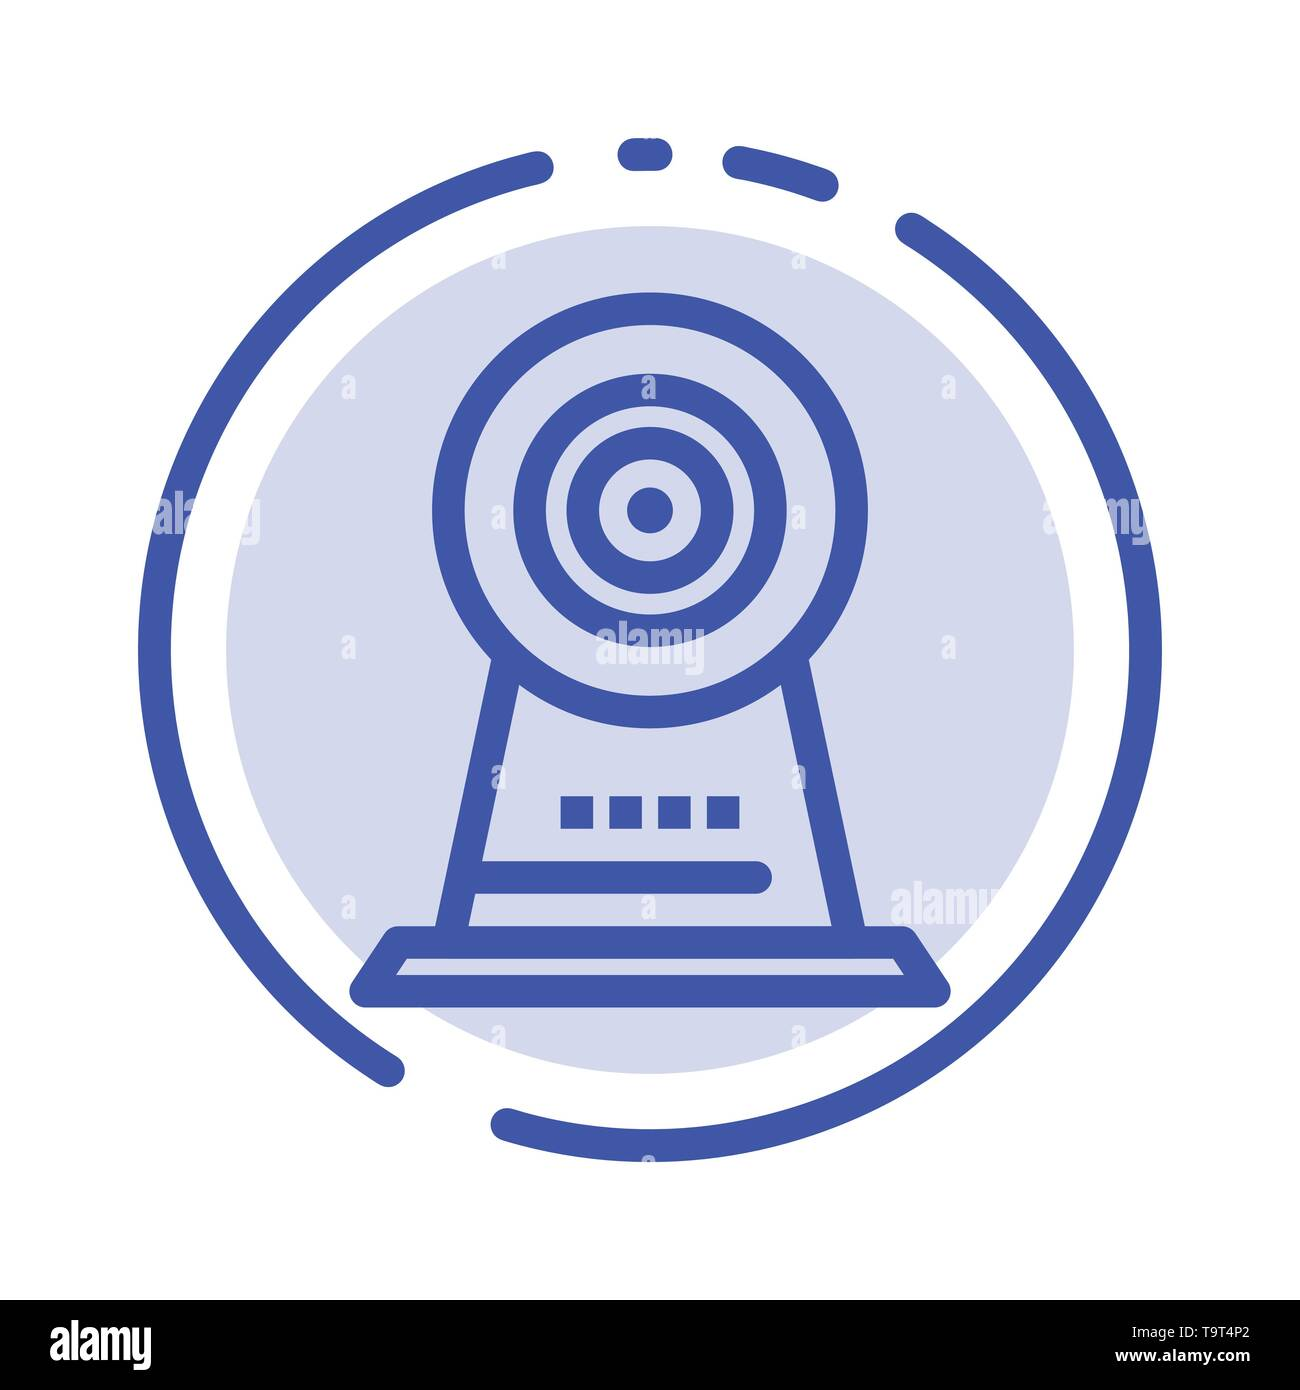 Camera, Webcam, Security, Hotel Blue Dotted Line Line Icon - Stock Image